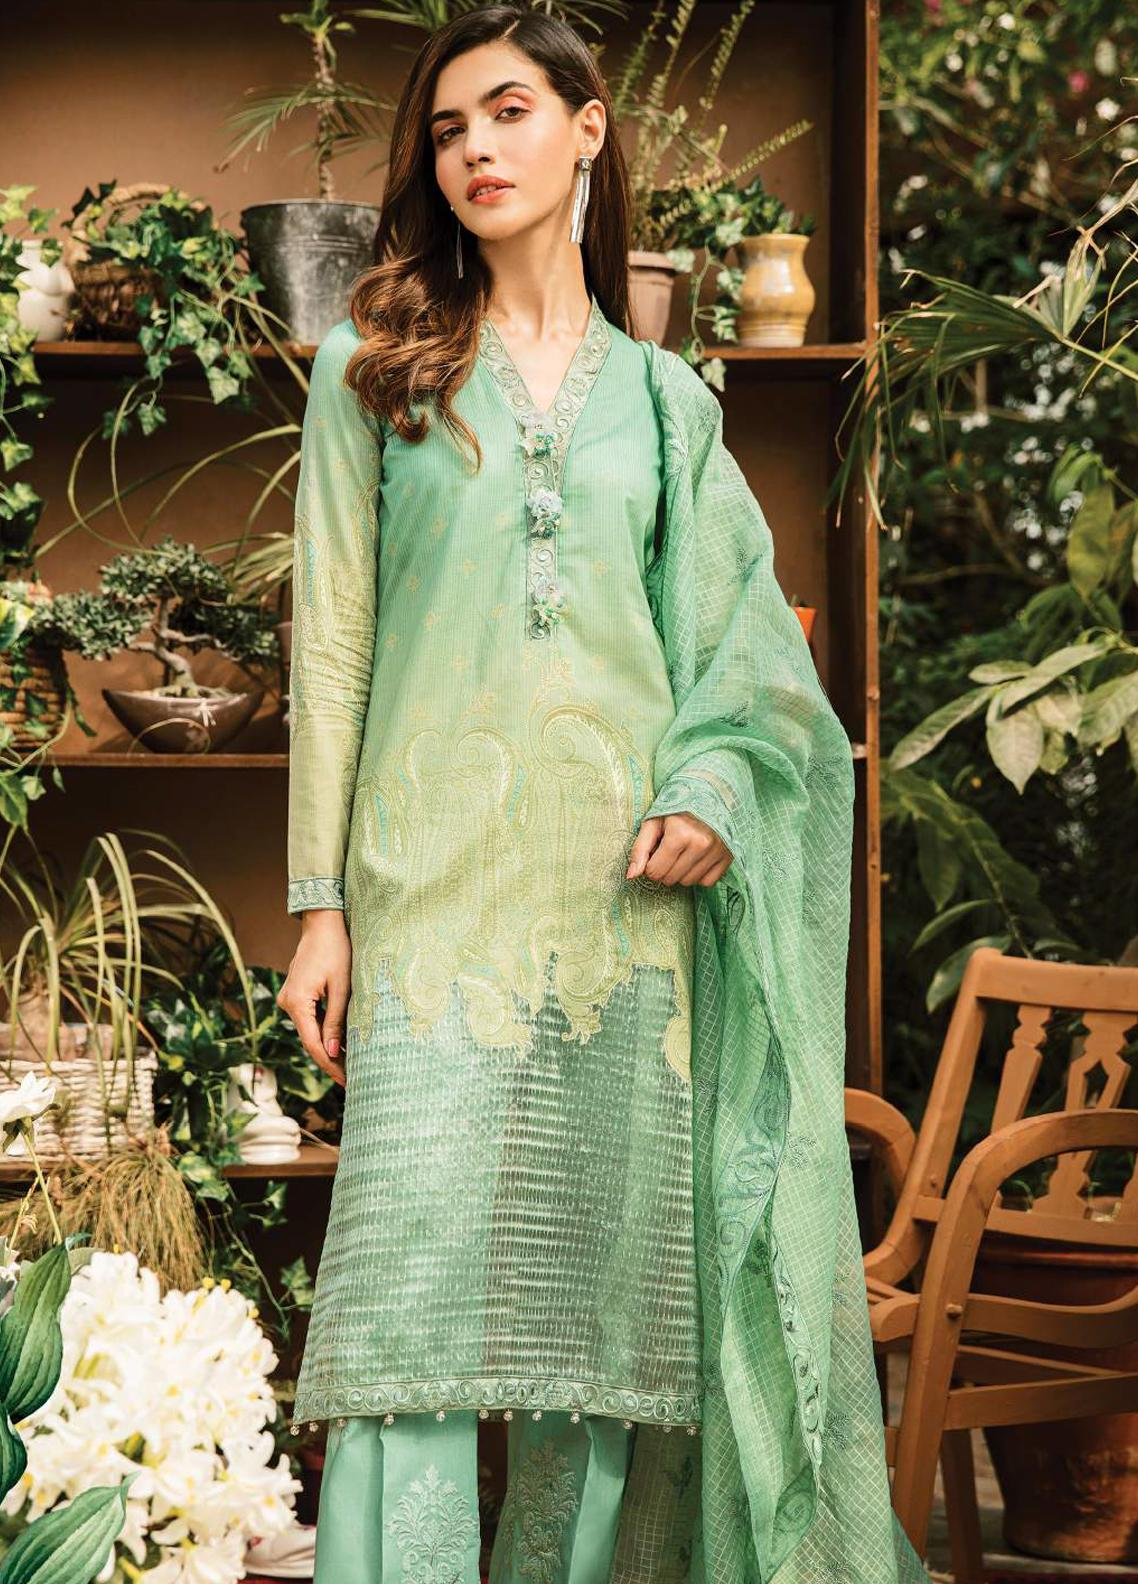 Serene Premium Embroidered Lawn Unstitched 3 Piece Suit SPM19L 08 MINT SWIRL - Spring / Summer Collection